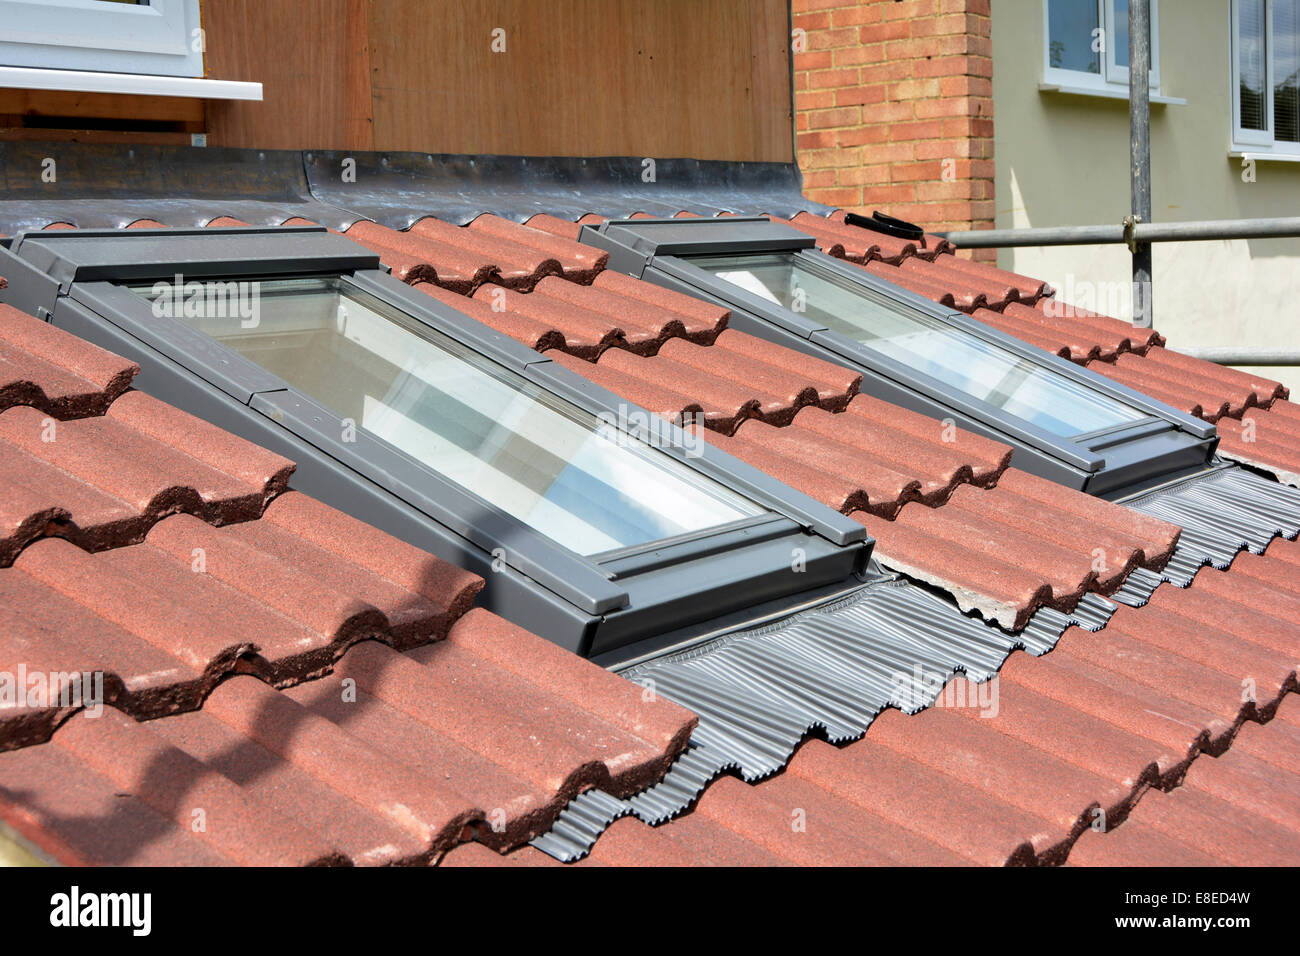 Roof lights & new tiles on roof on part of new kitchen extension to existing house shows lead & proprietary - Stock Image